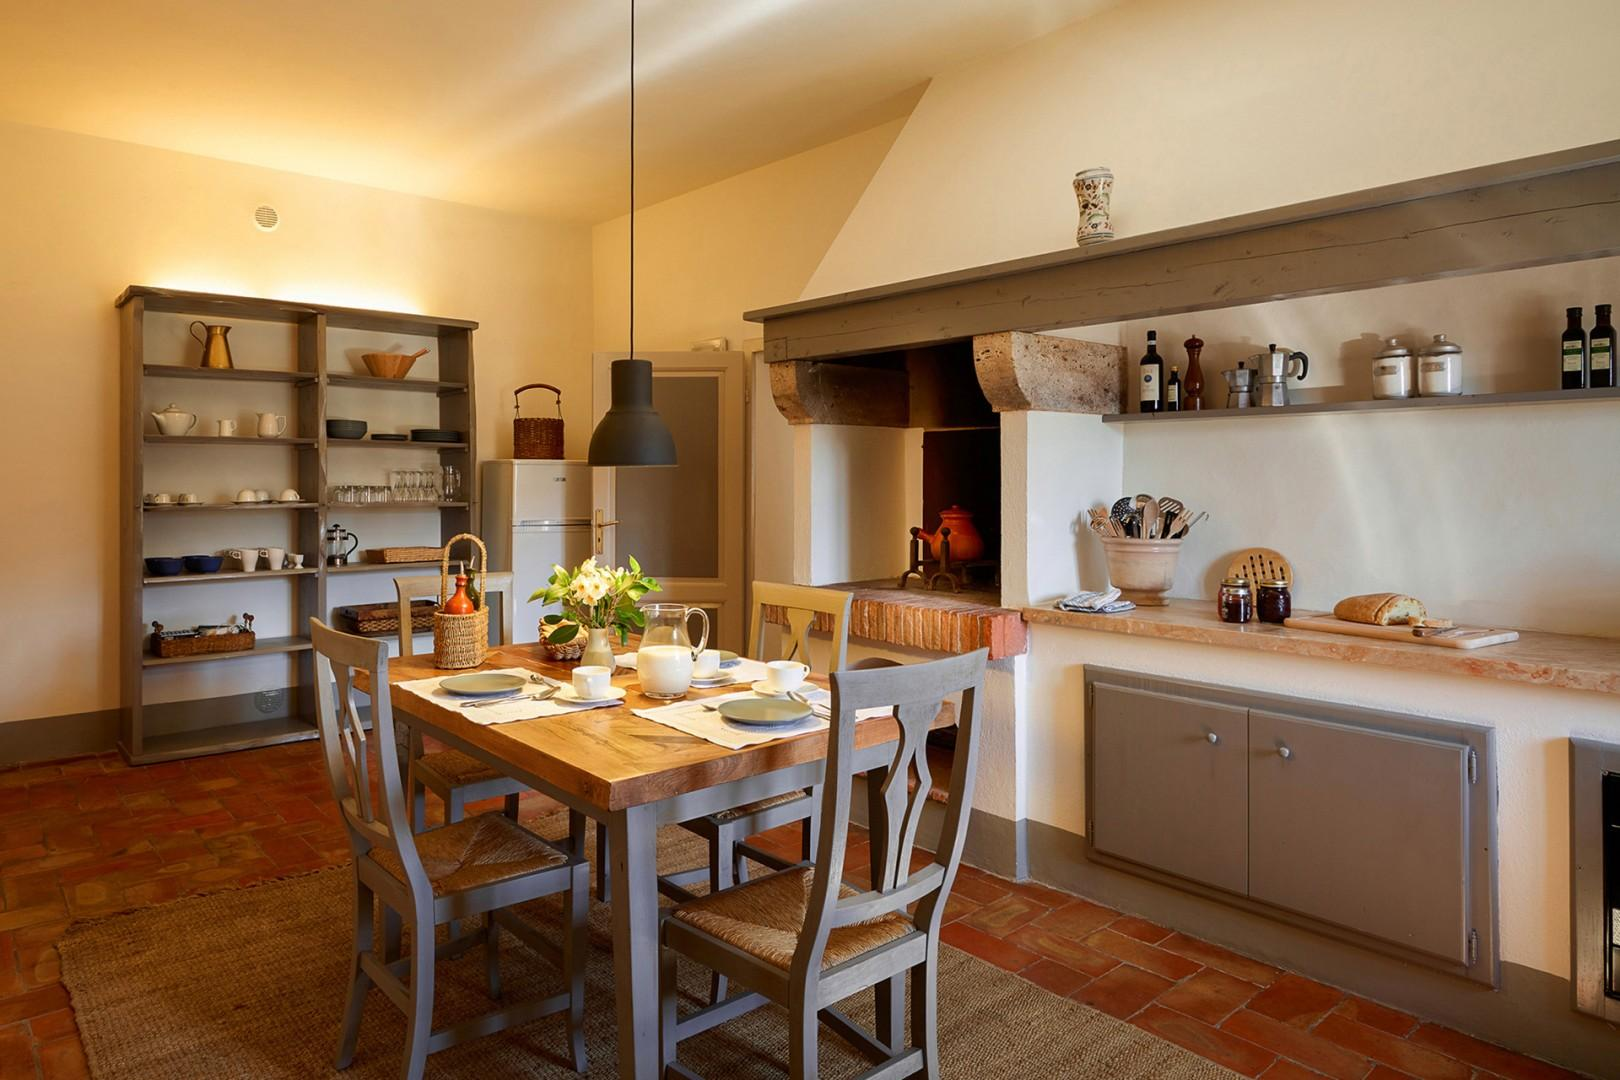 This country kitchen even has an old wood burning oven for character.